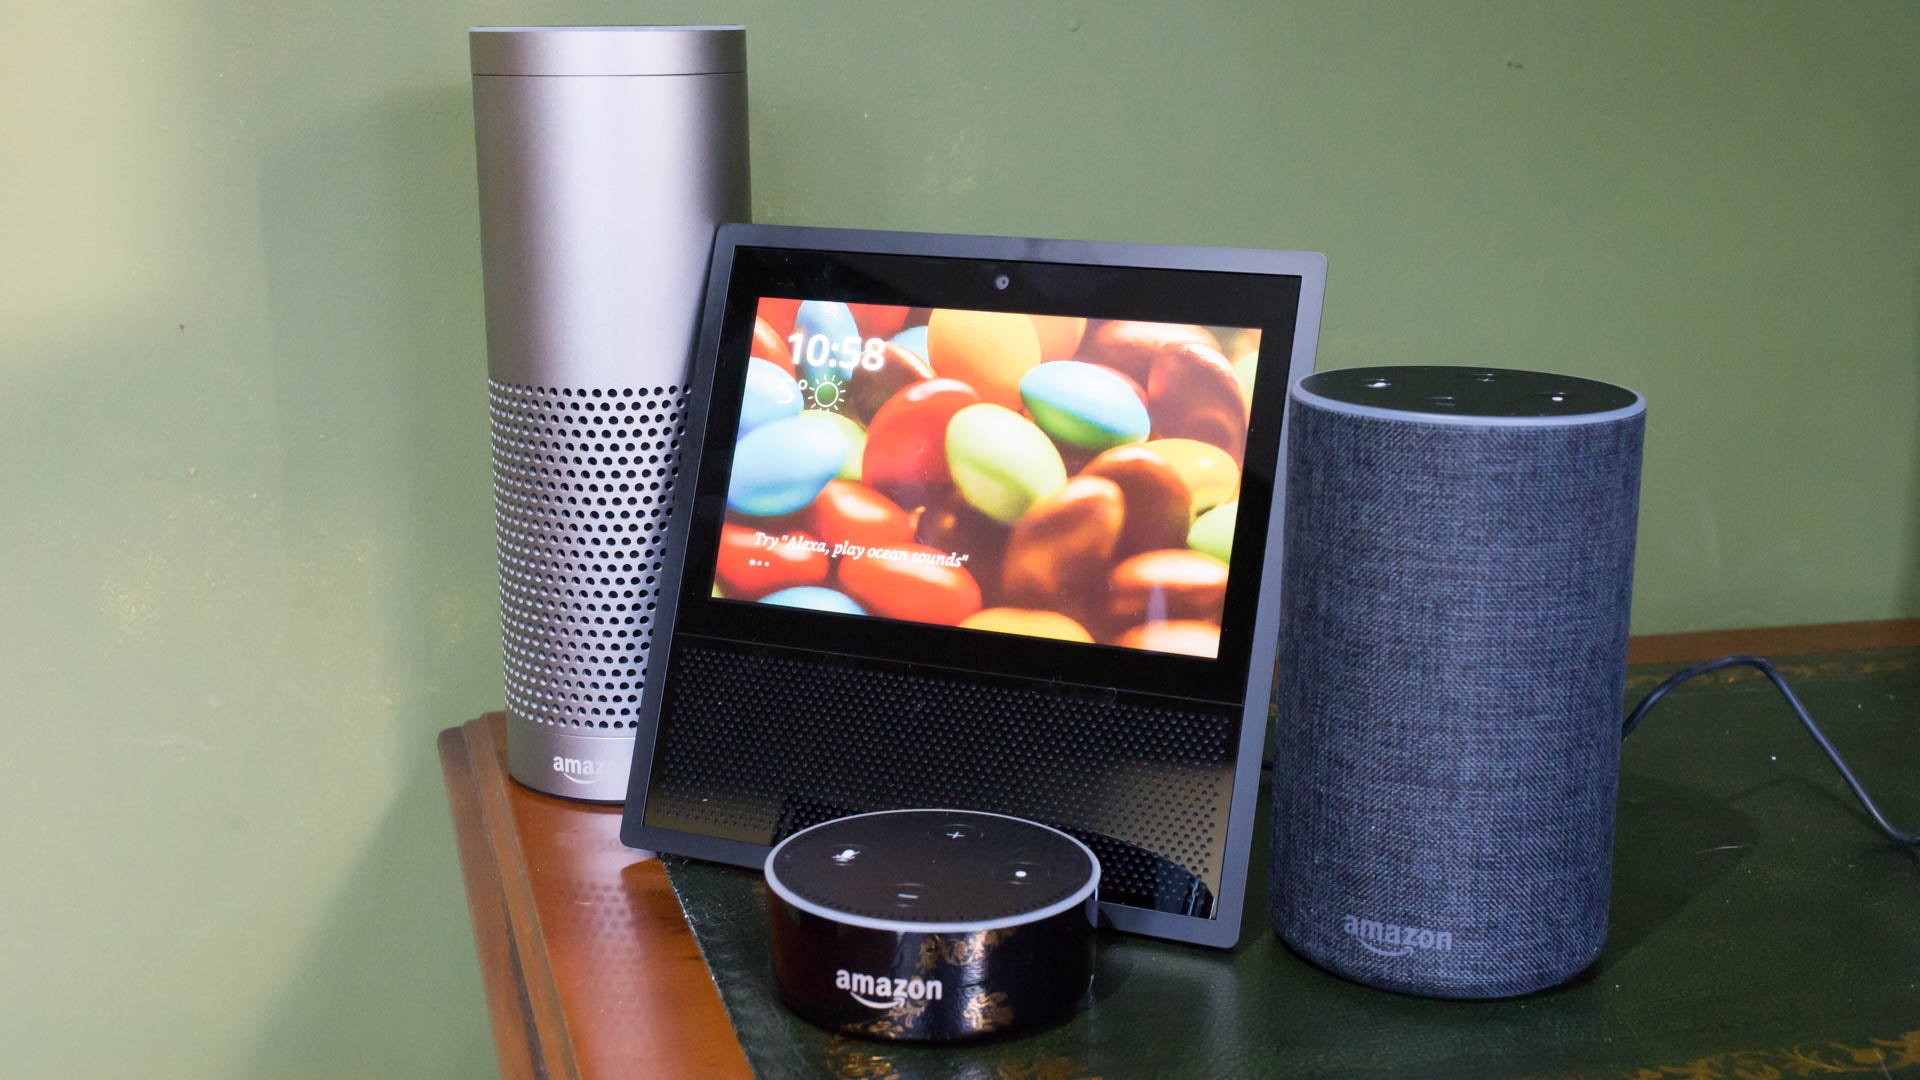 ' ' from the web at 'https://ksassets.timeincuk.net/wp/uploads/sites/54/2017/12/Amazon-Echo-Group-1-of-1.jpg'